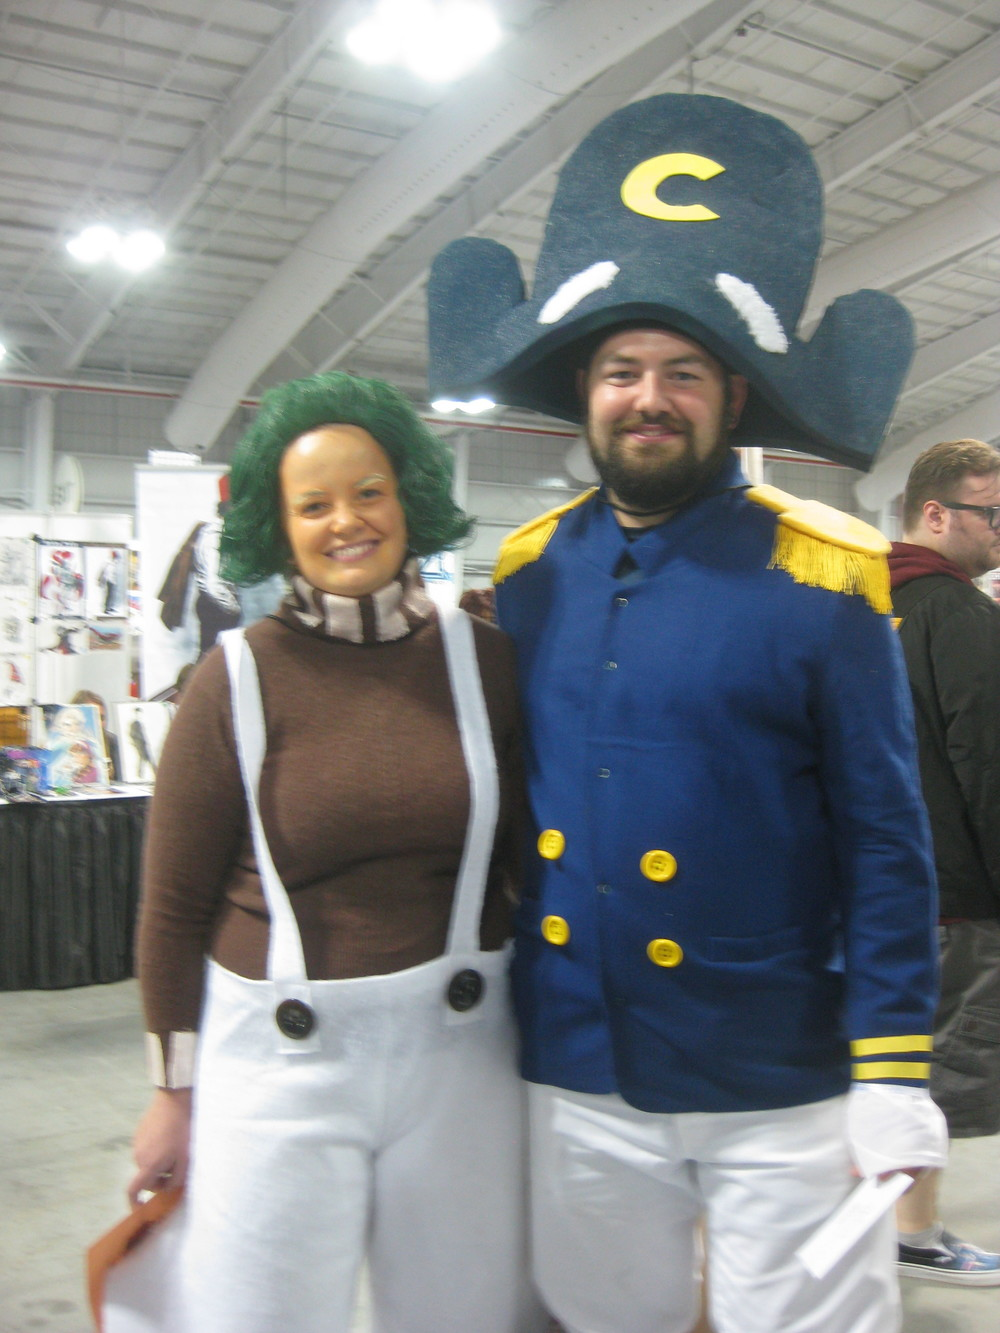 An Oompa Loompa and Captain Crunch... now THERE'S cosplay you don't see every day!